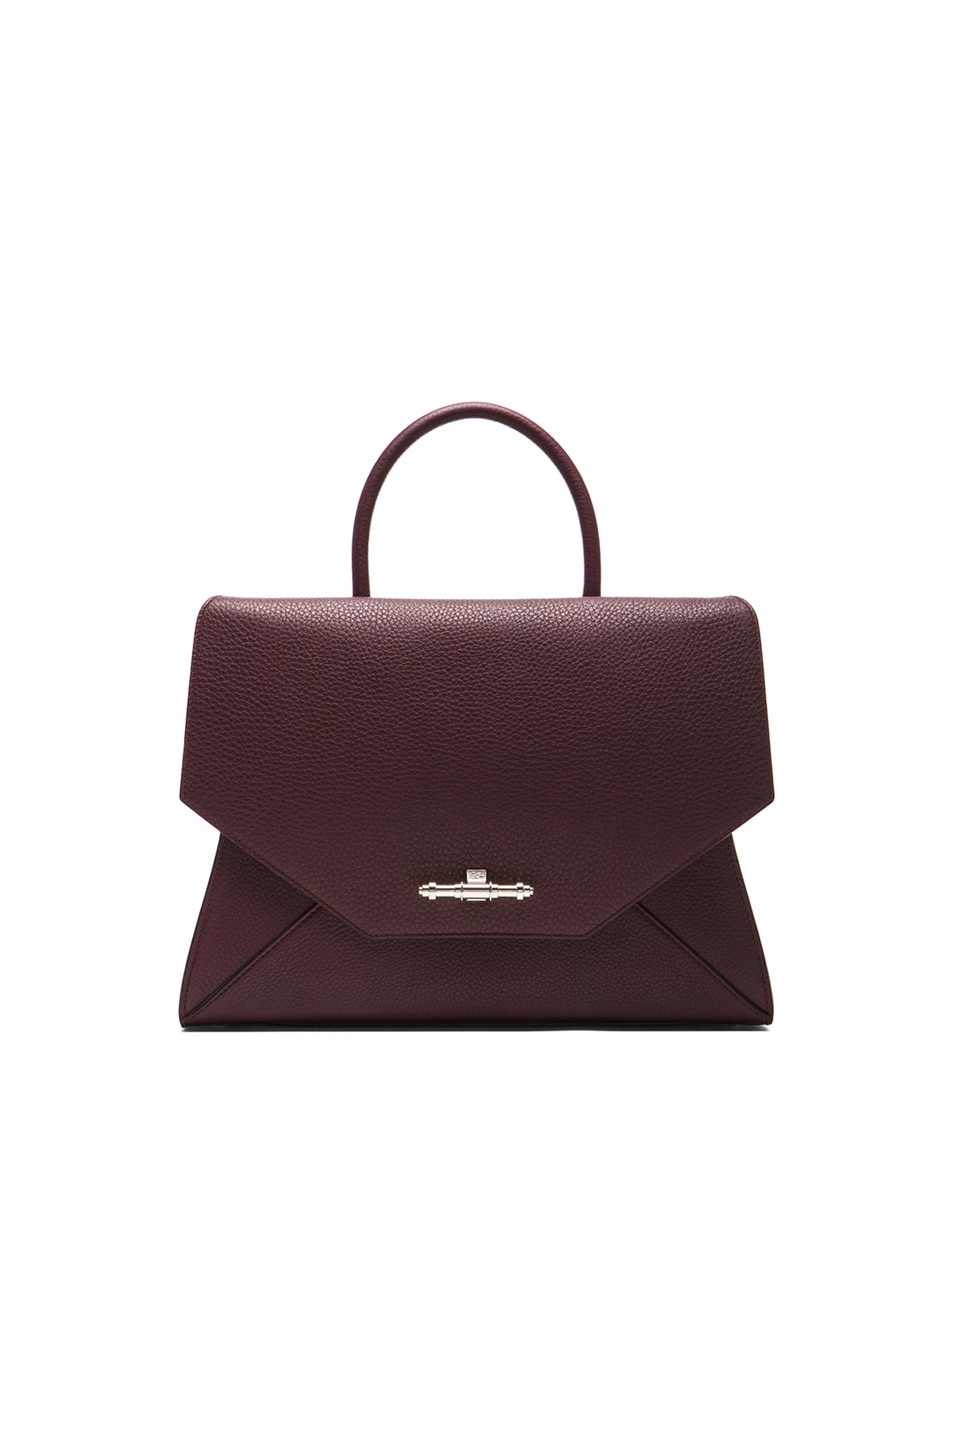 Image 1 of GIVENCHY Medium Obsedia Top Handle Bag in Oxblood